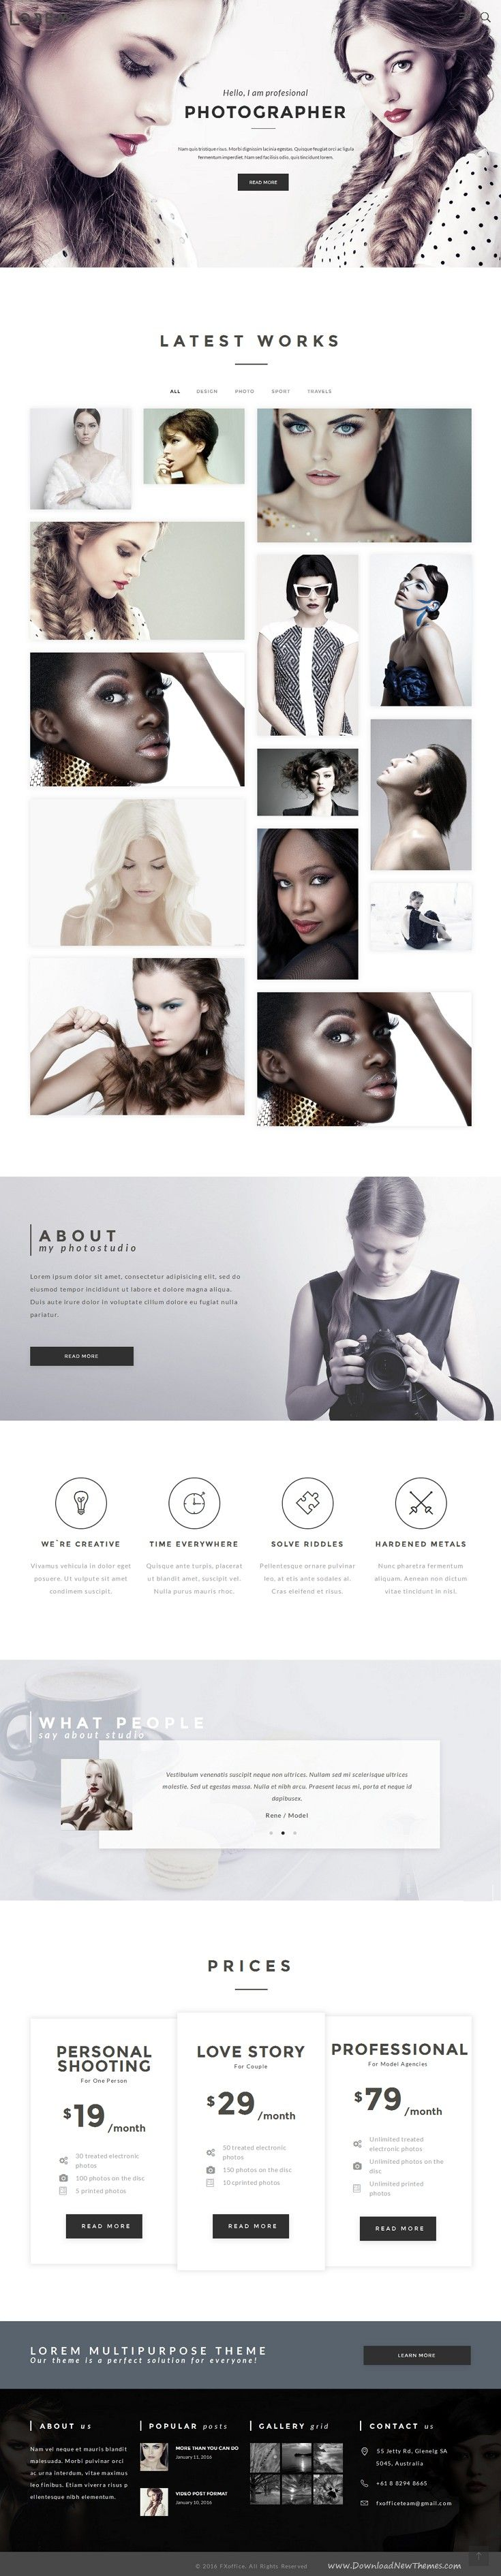 Best 25+ Photography website ideas on Pinterest